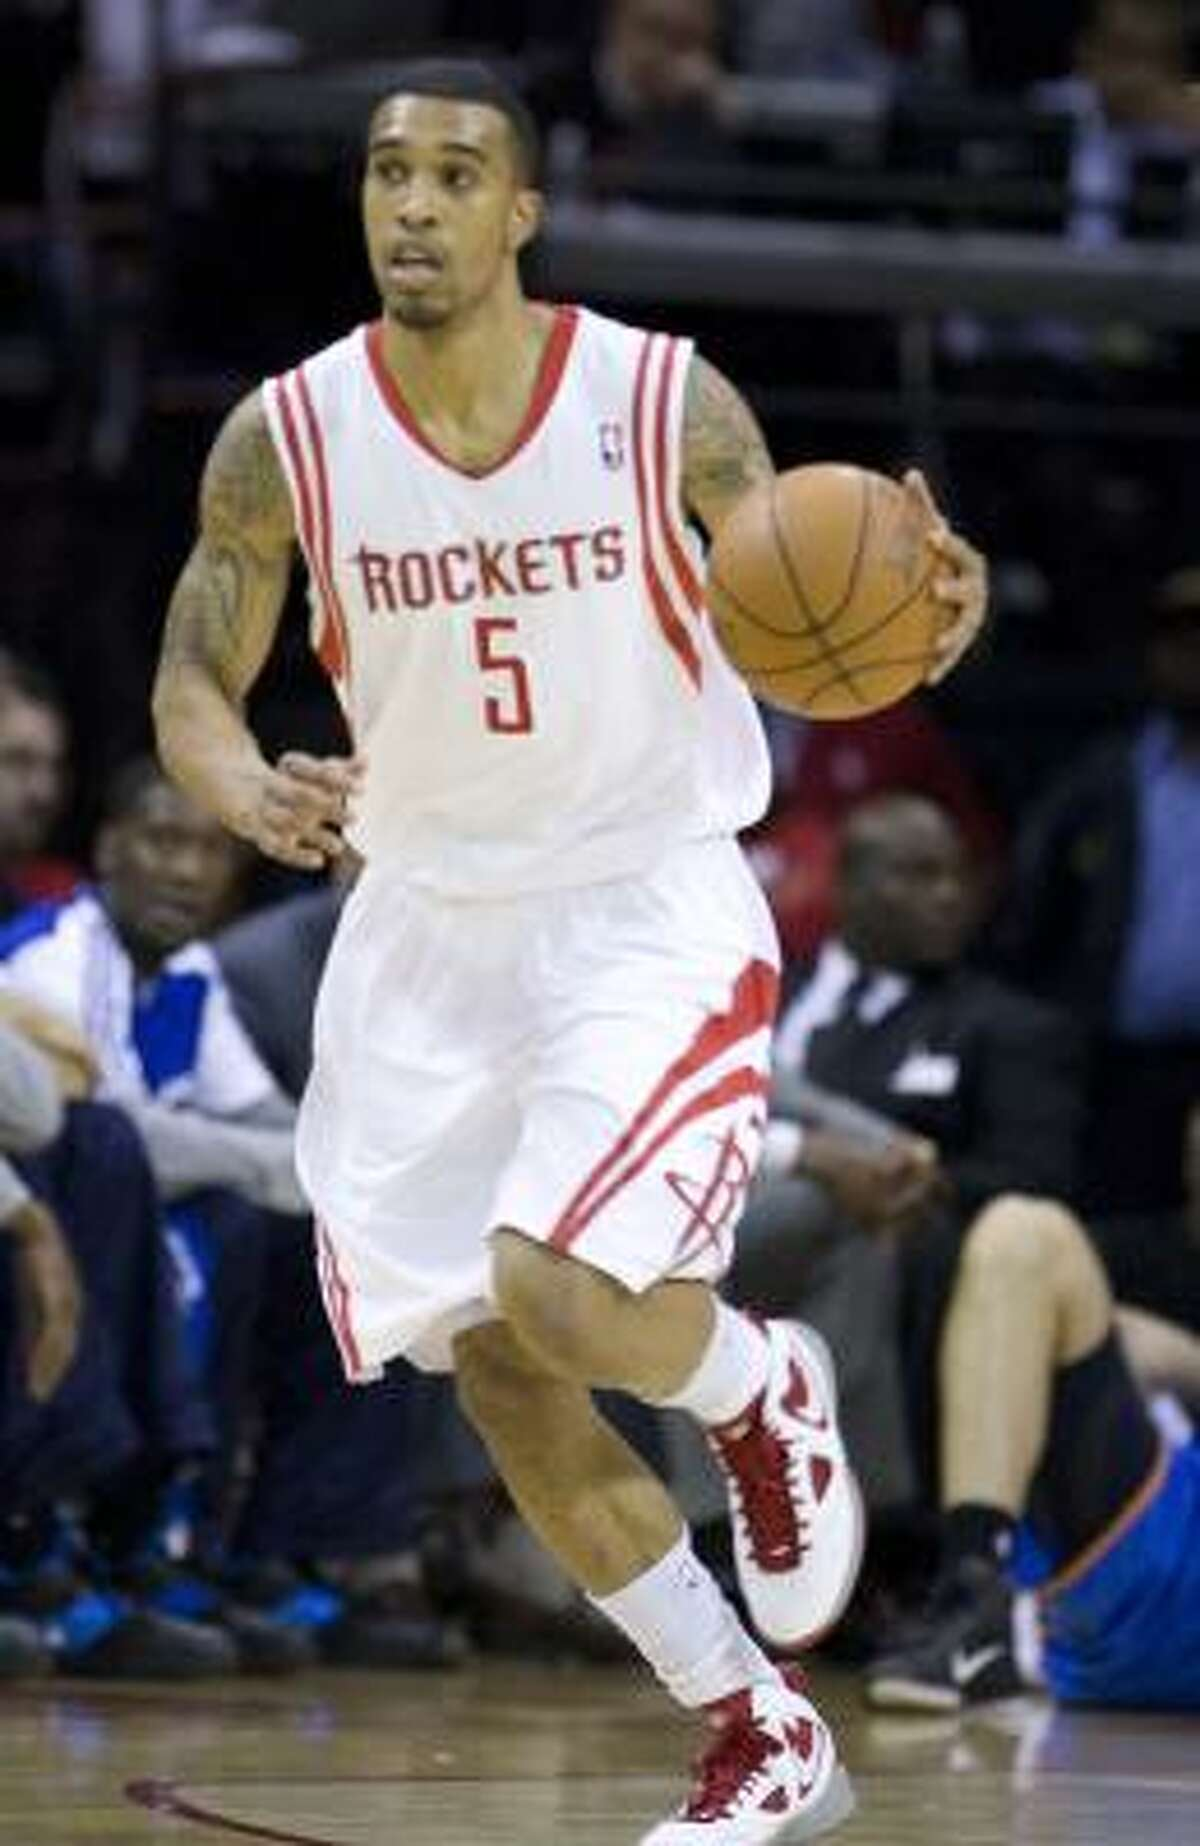 Rockets guard Courtney Lee missed Monday's practice with flu-like symptoms.